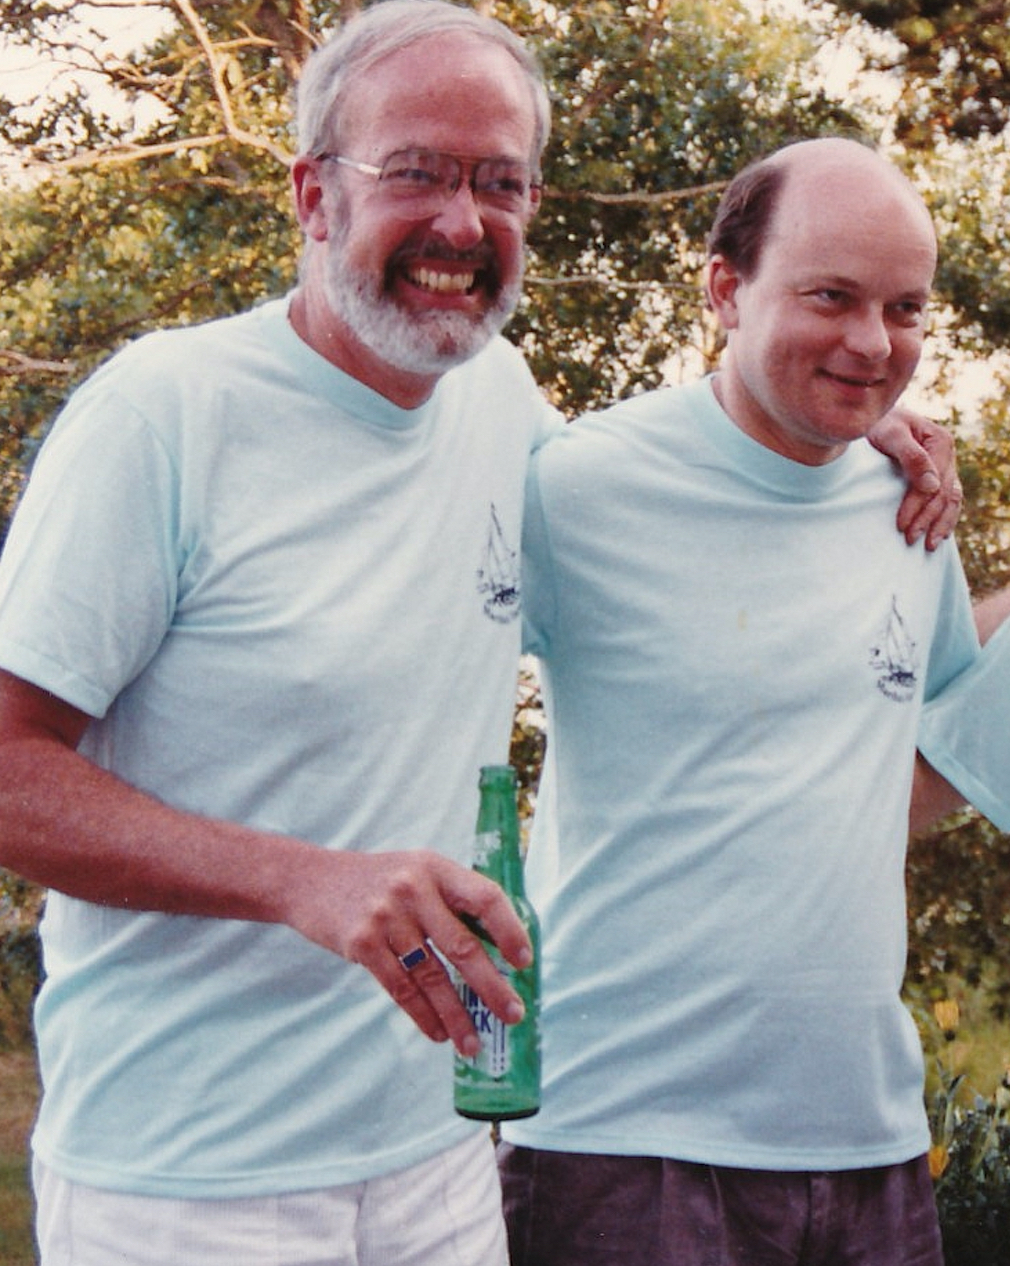 Gardner and Bob happy. Everything on track!